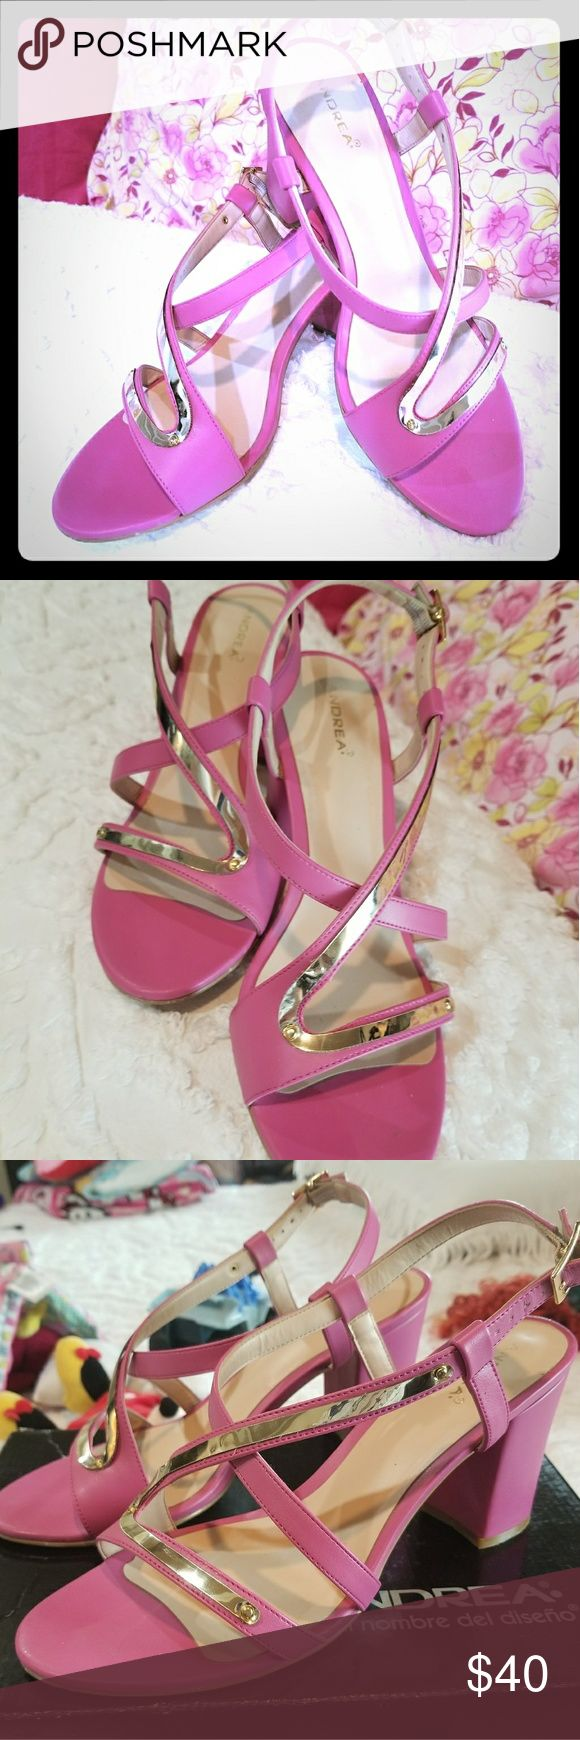 Andrea pink shoes Beautiful and comfortable shoes Andrea Shoes